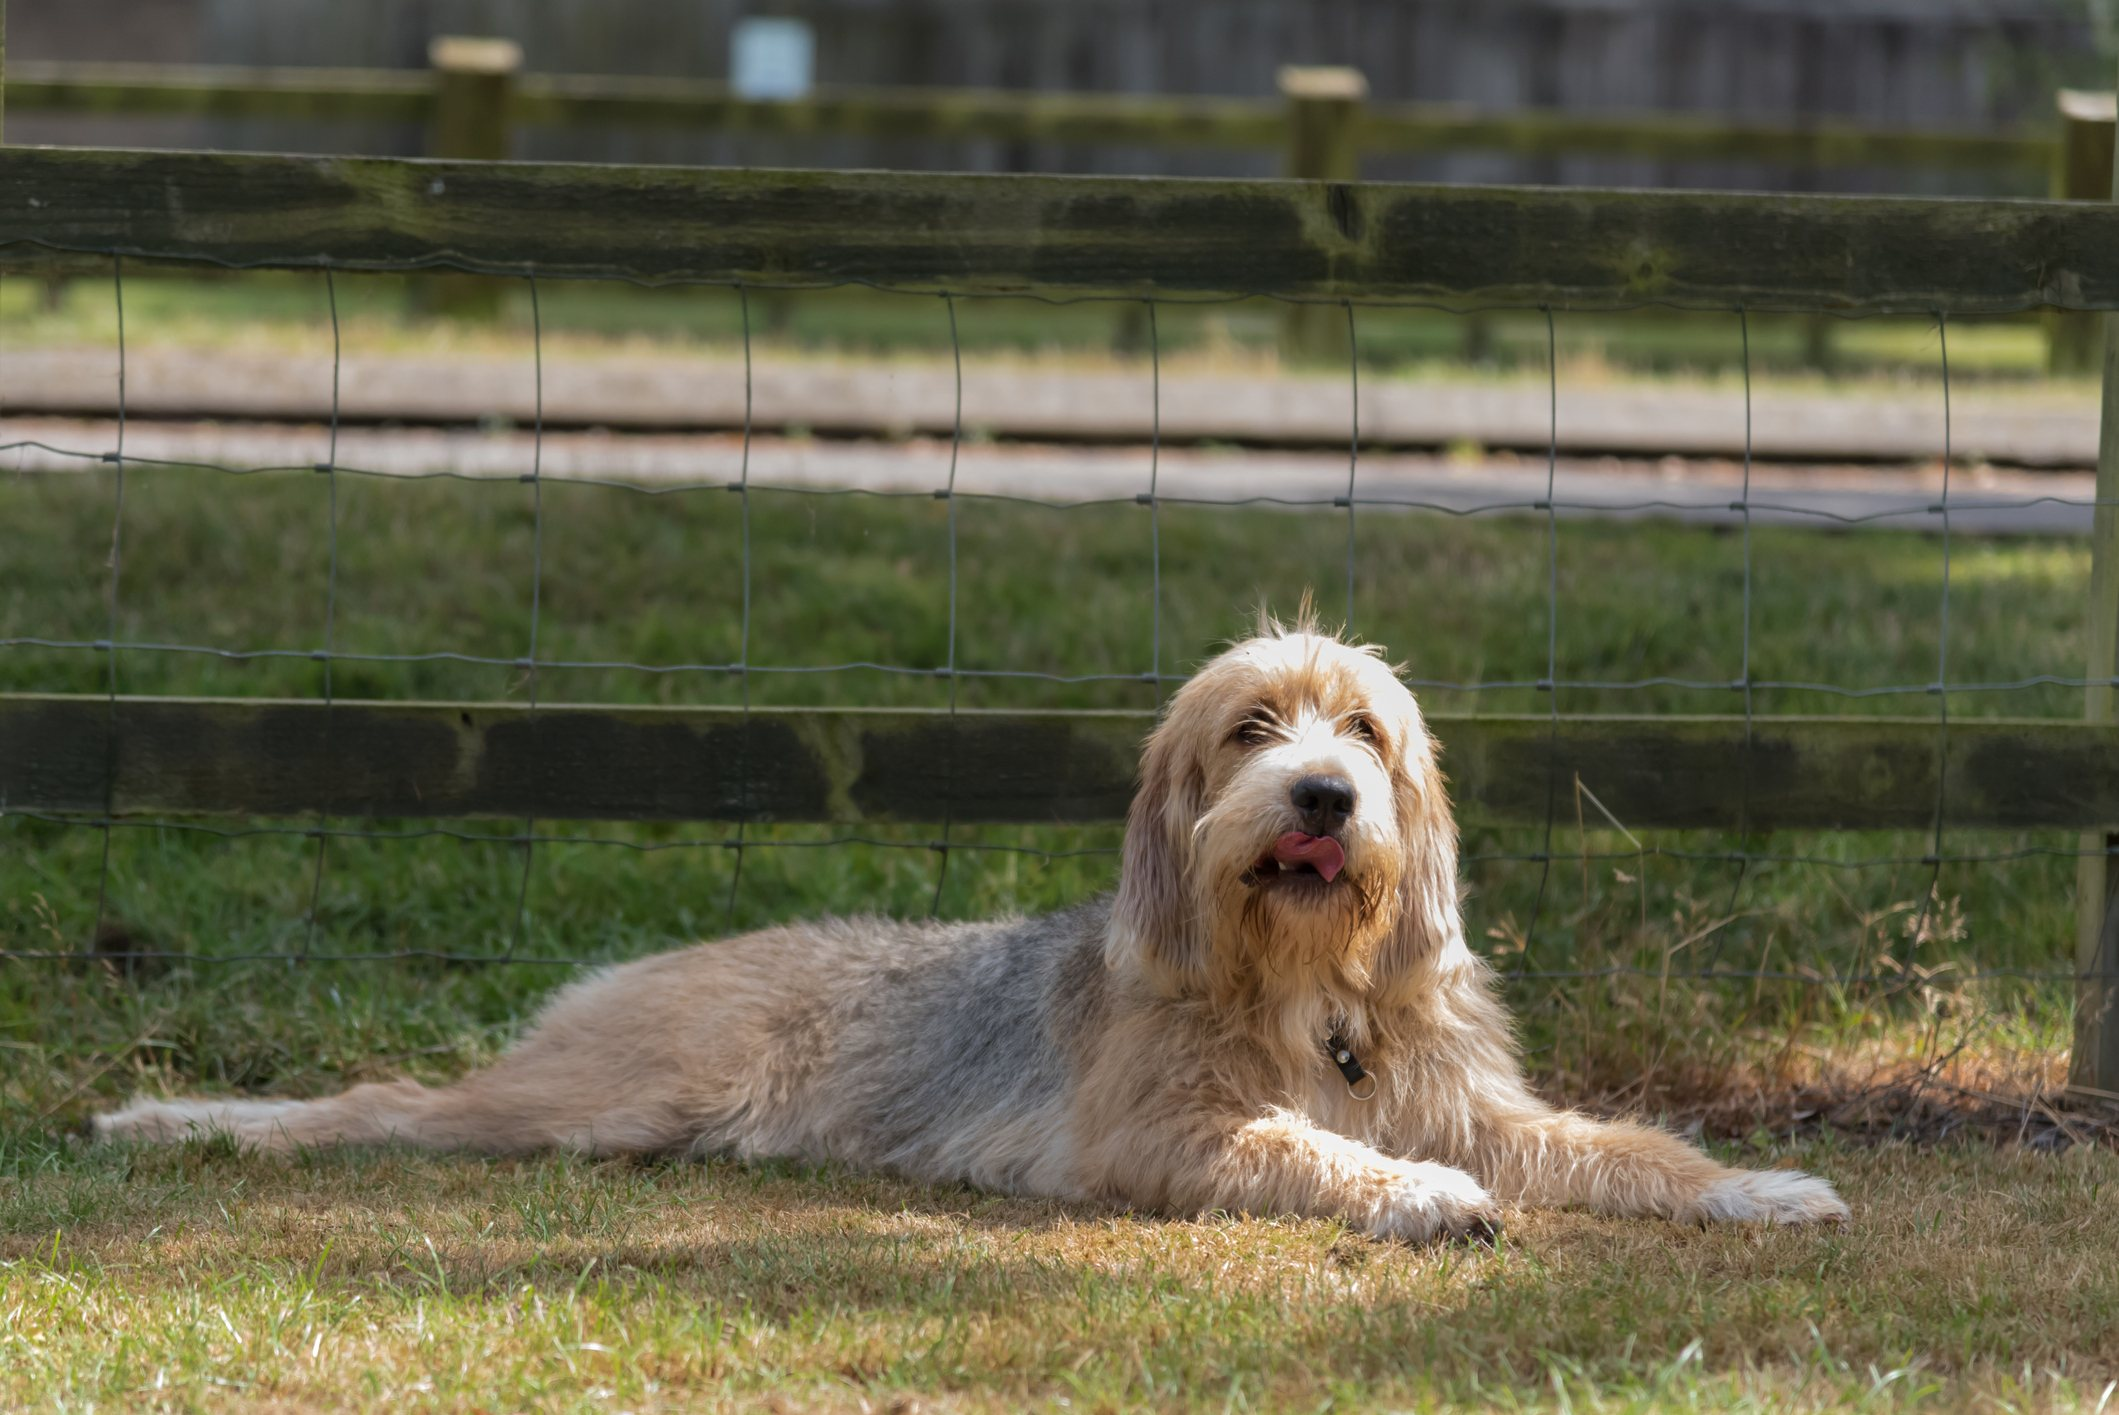 Otterhound lying down stretched out by a fence in the shade